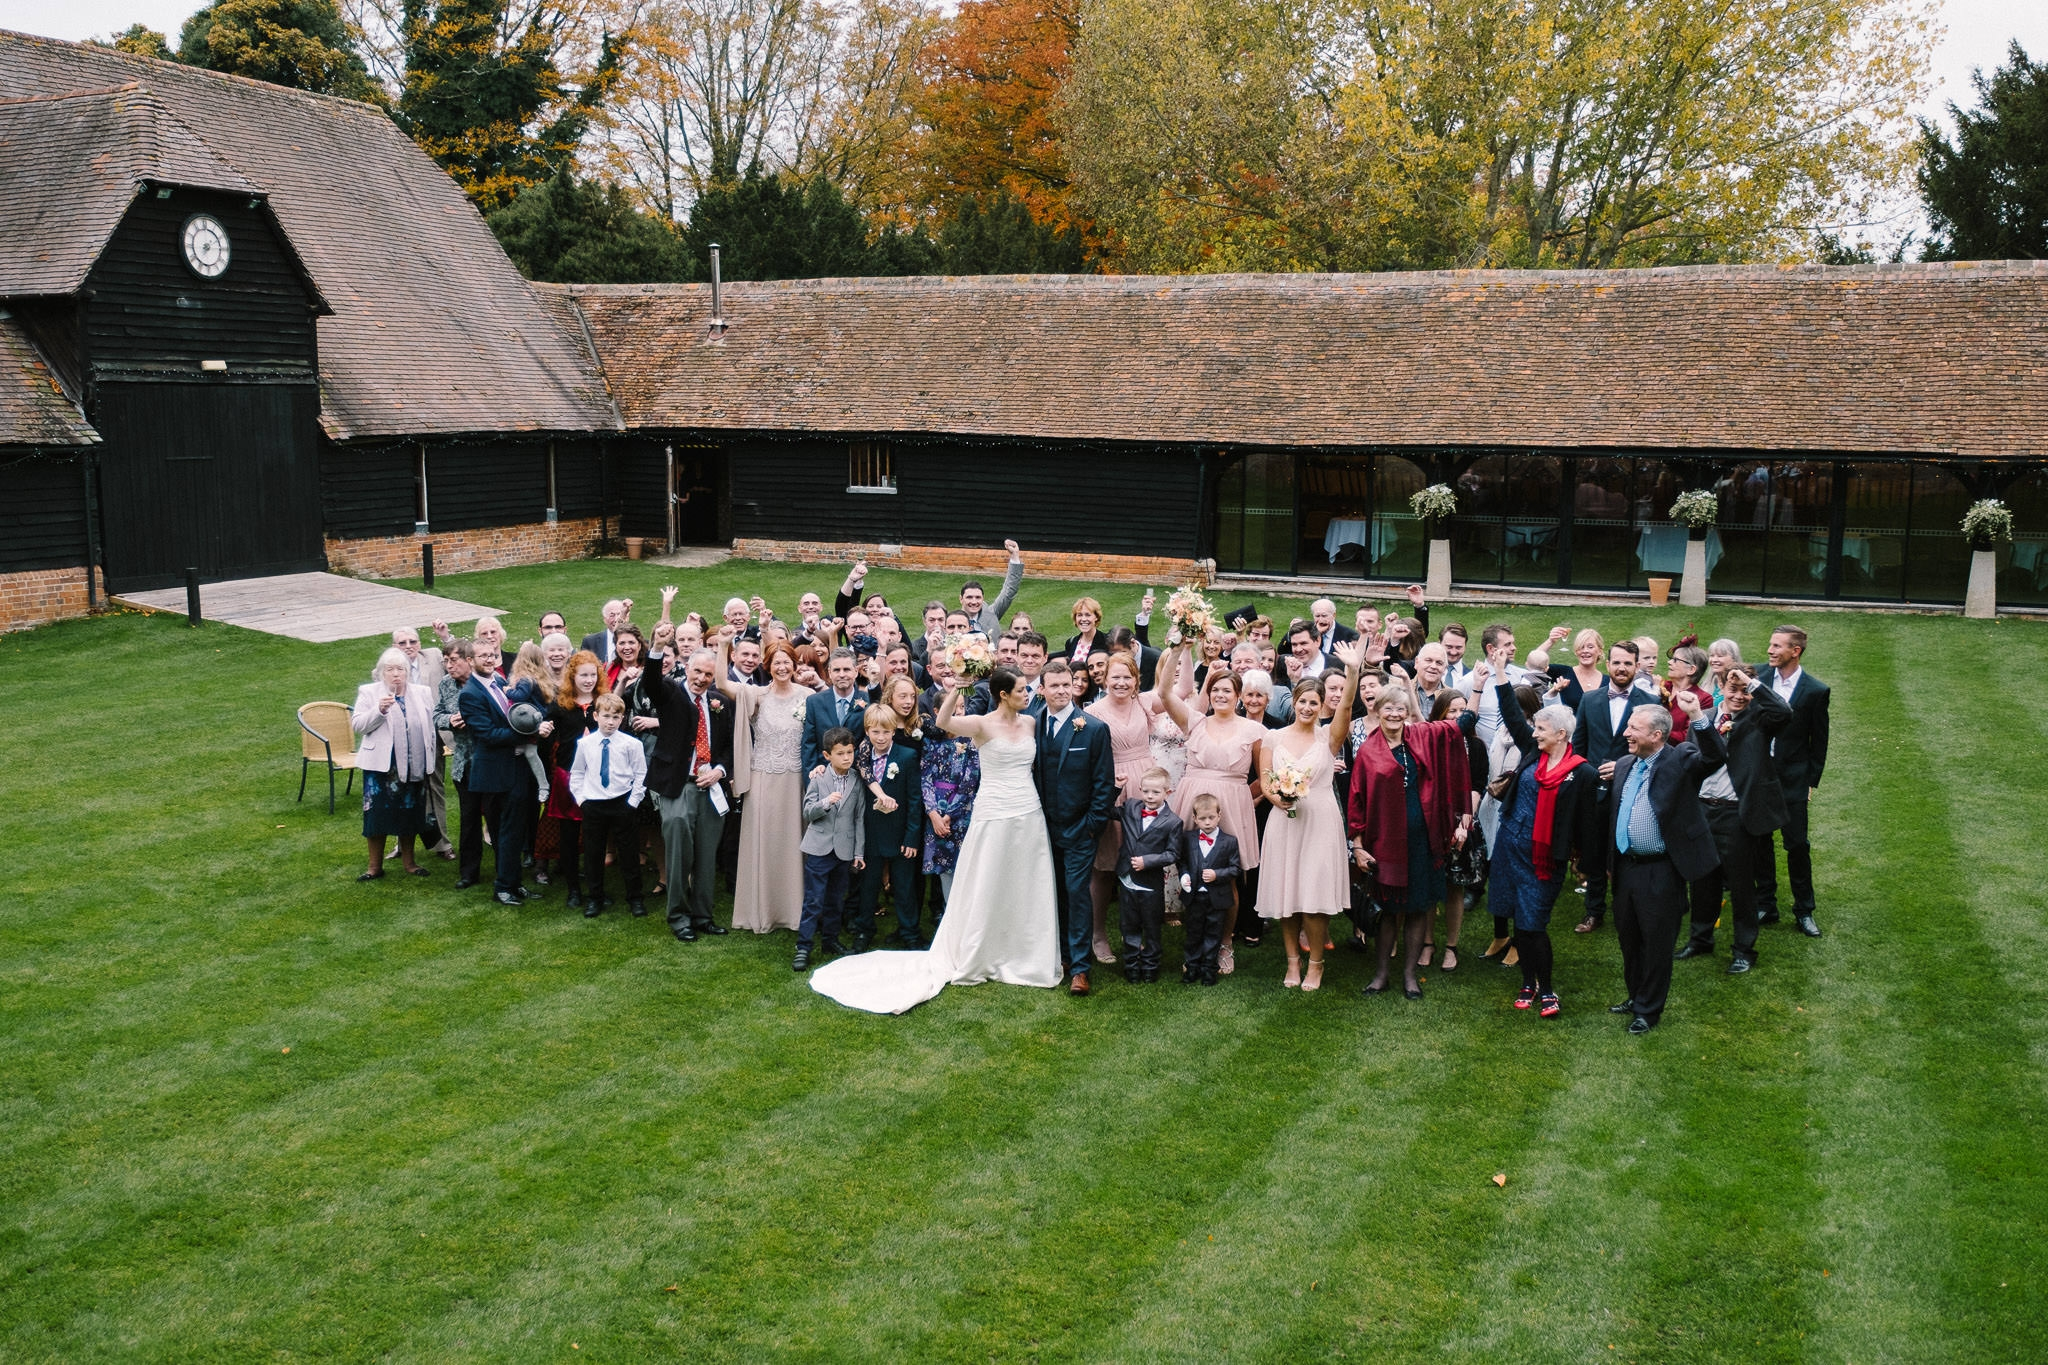 Wedding guests on the lawn at Lains Barn Wedding Venue Oxfordshire